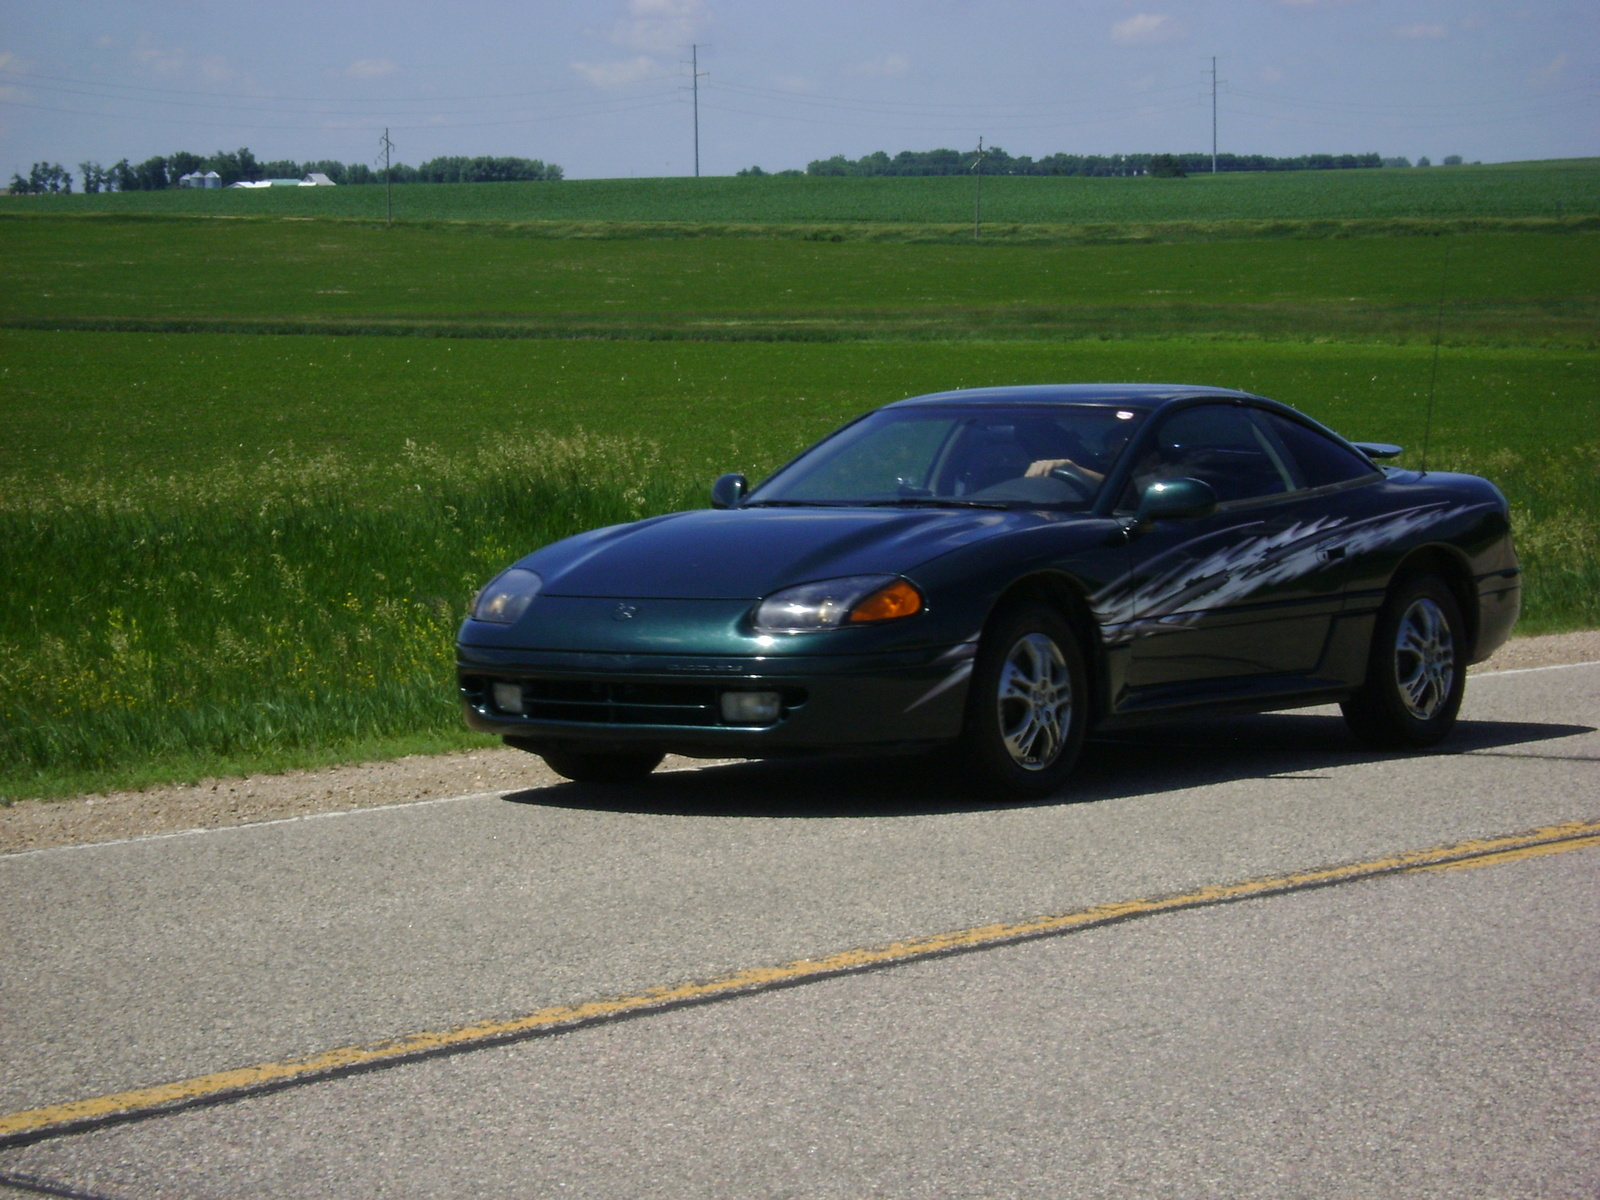 1994 Dodge Stealth - Pictures - 1994 Dodge Stealth 2 Dr STD Ha ...